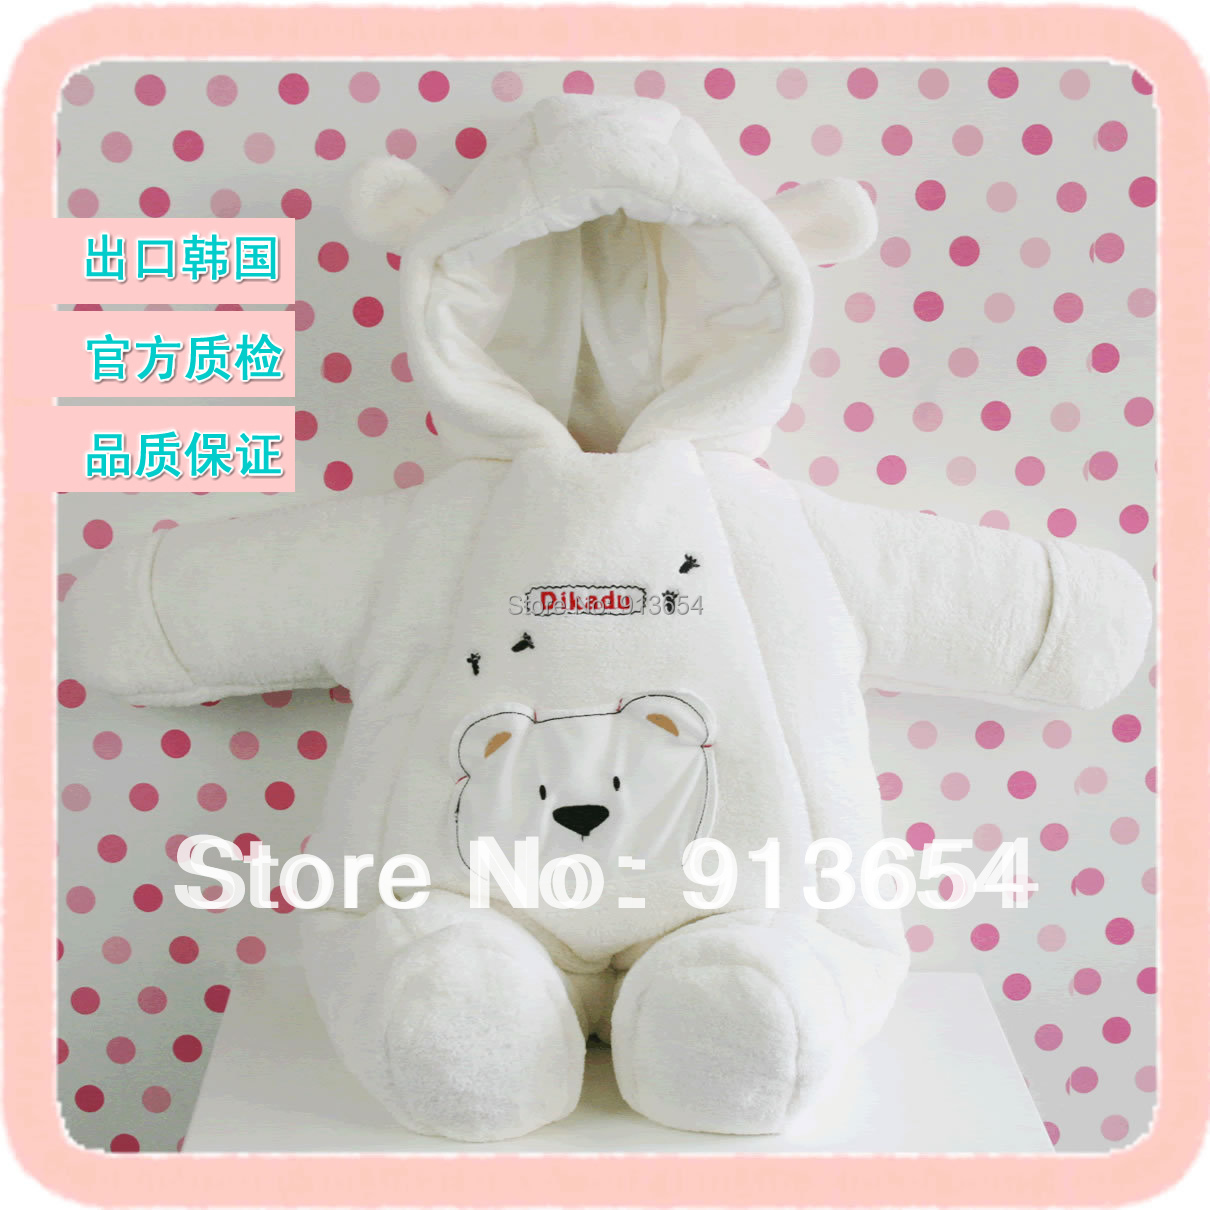 Free shipping new 2016 autumn winter overalls baby clothing newborn cotton romper kids cute warm overall baby jumpsuits